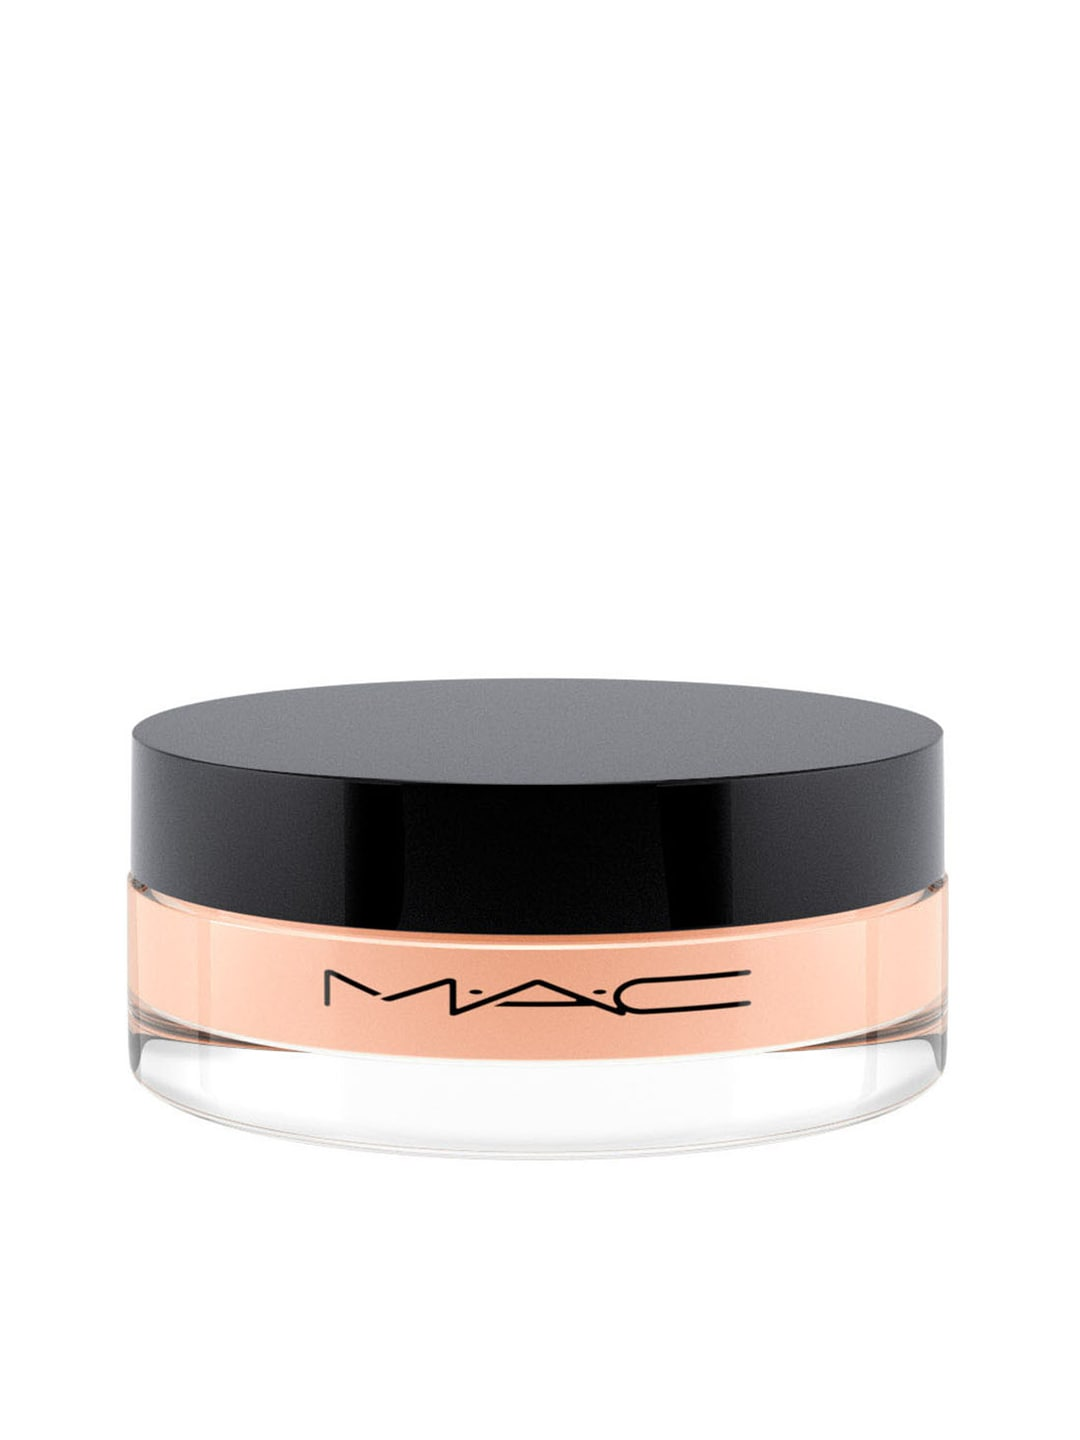 M.A.C Medium Plus Studio Fix Perfecting Powder image